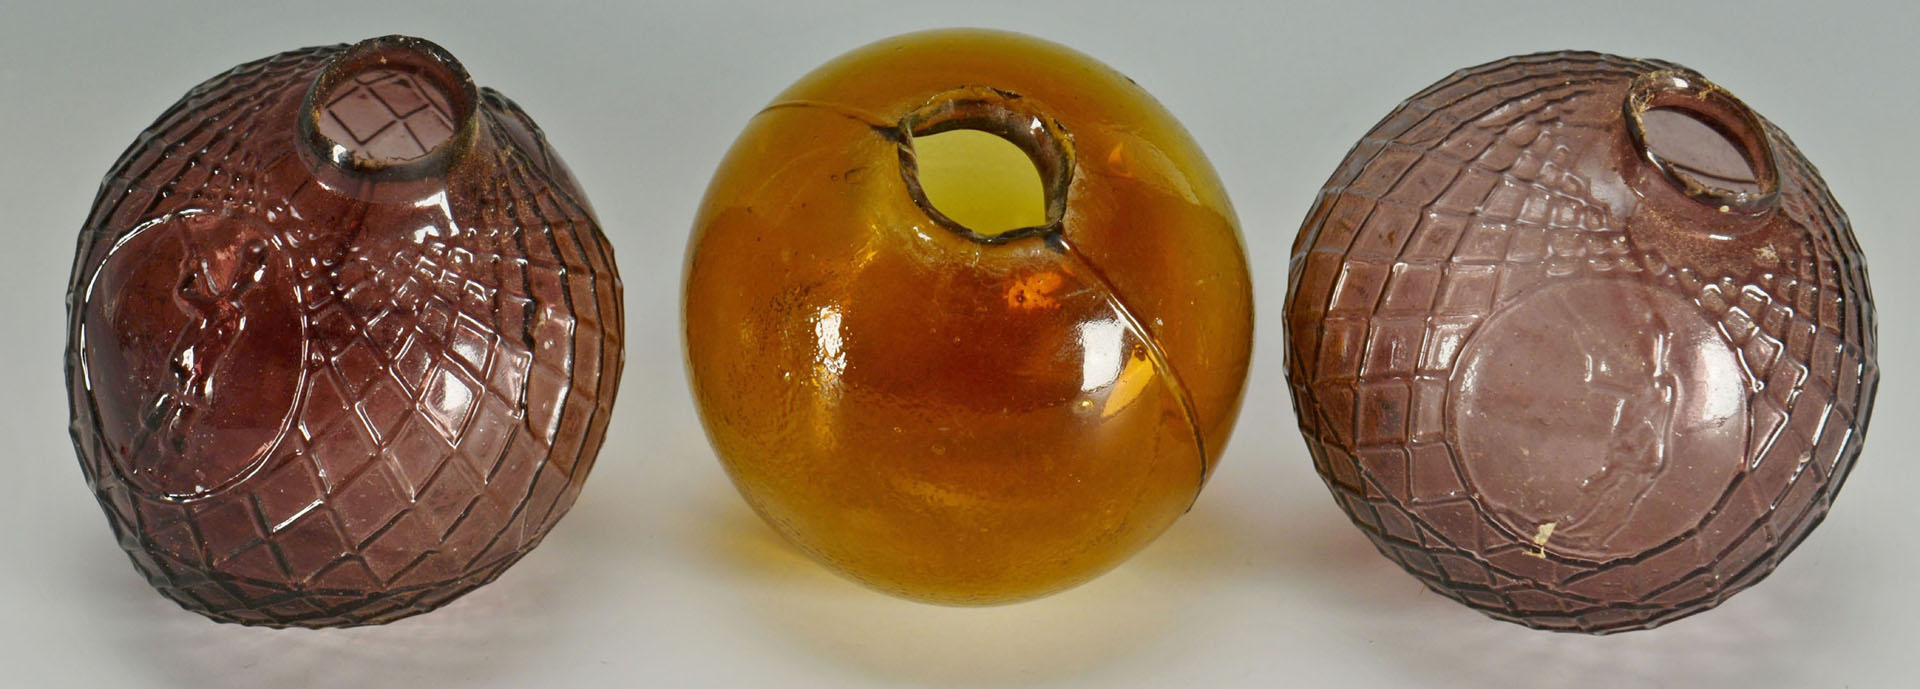 Lot 527: 3 Early Glass Target Balls, Amethyst & Amber